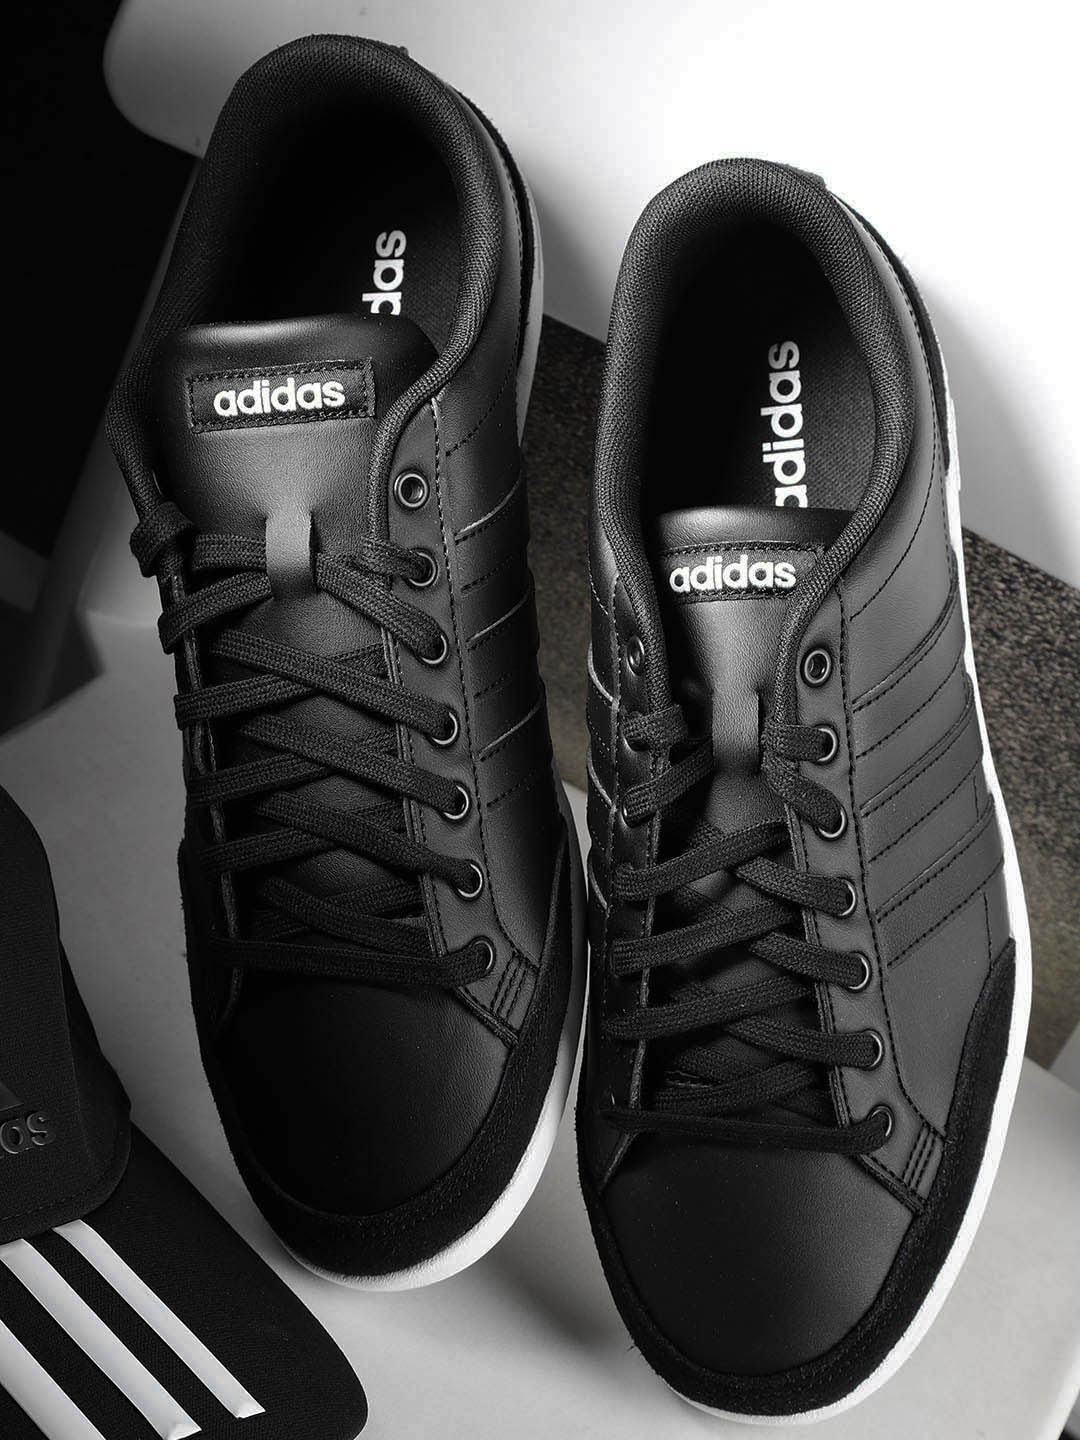 674e263453bae Adidas Black Leather Shoes - Buy Adidas Black Leather Shoes online in India